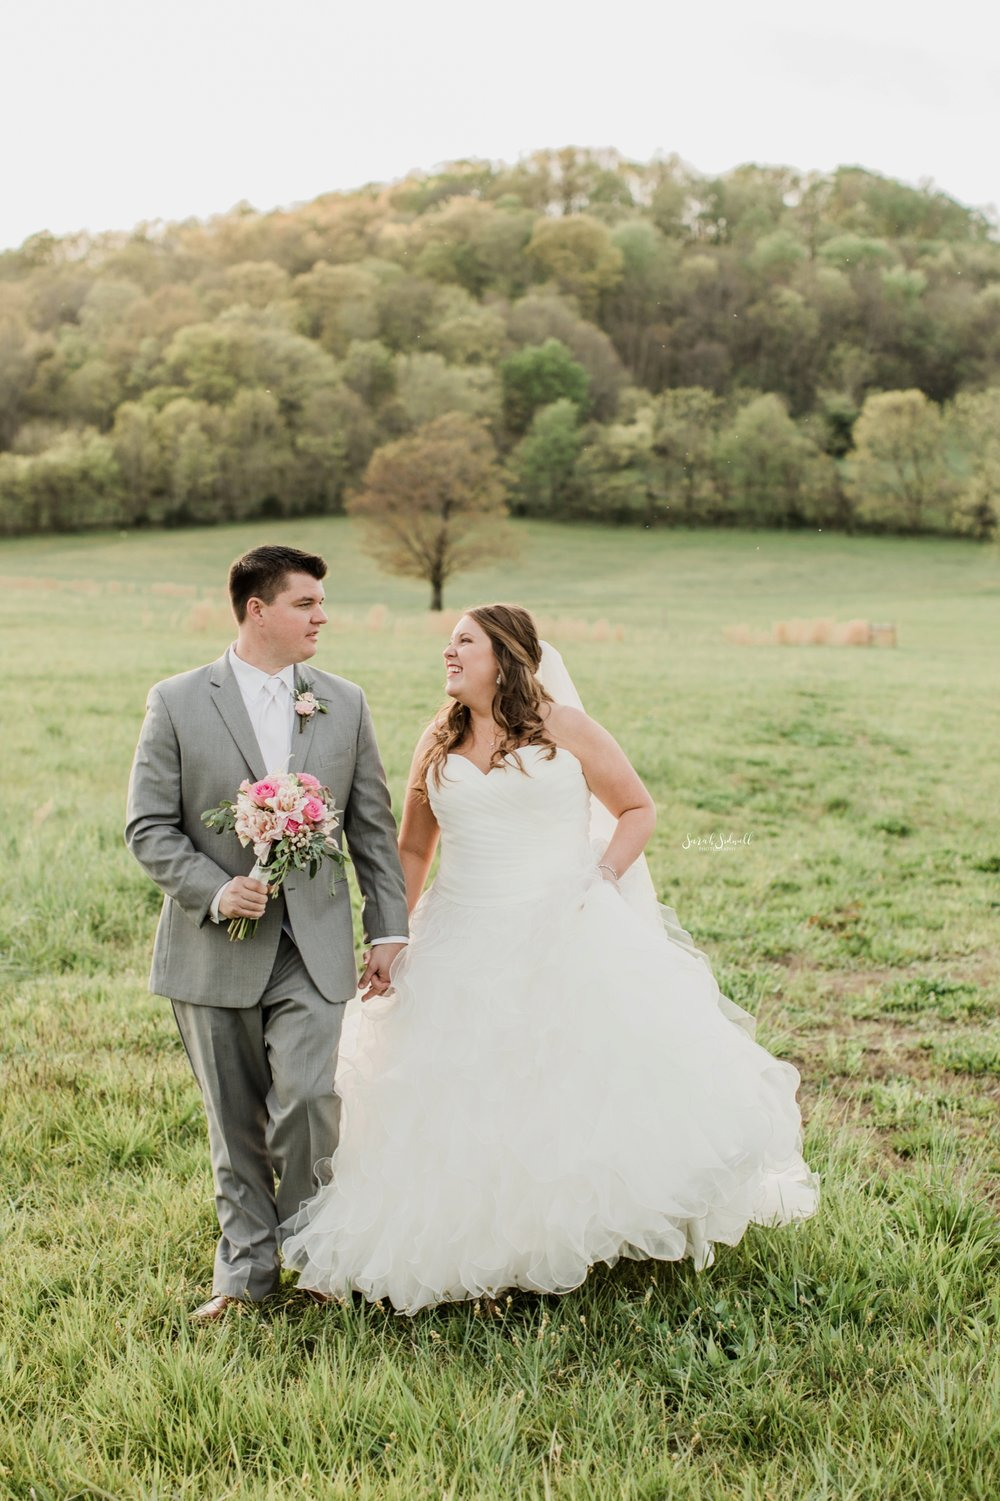 A bride and groom twirl in a green field.